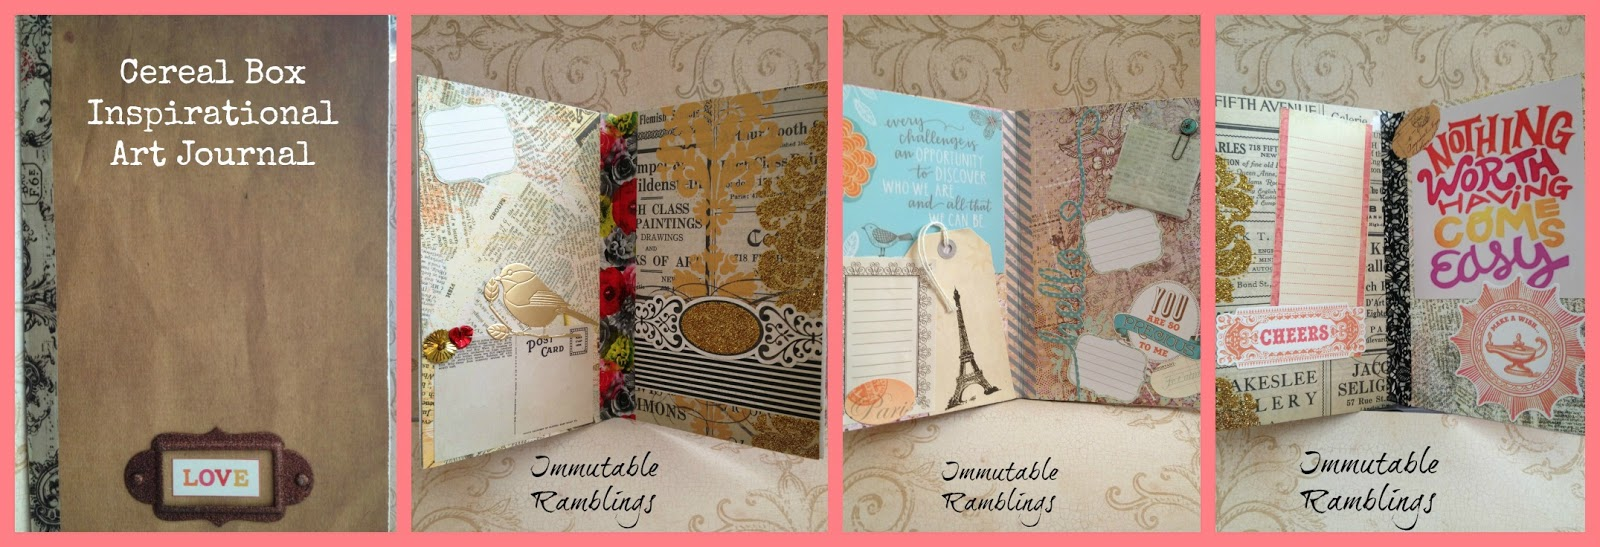 Cereal box inspirational art journal tbccrafters immutable ramblings what would you make out of a cereal box ccuart Images